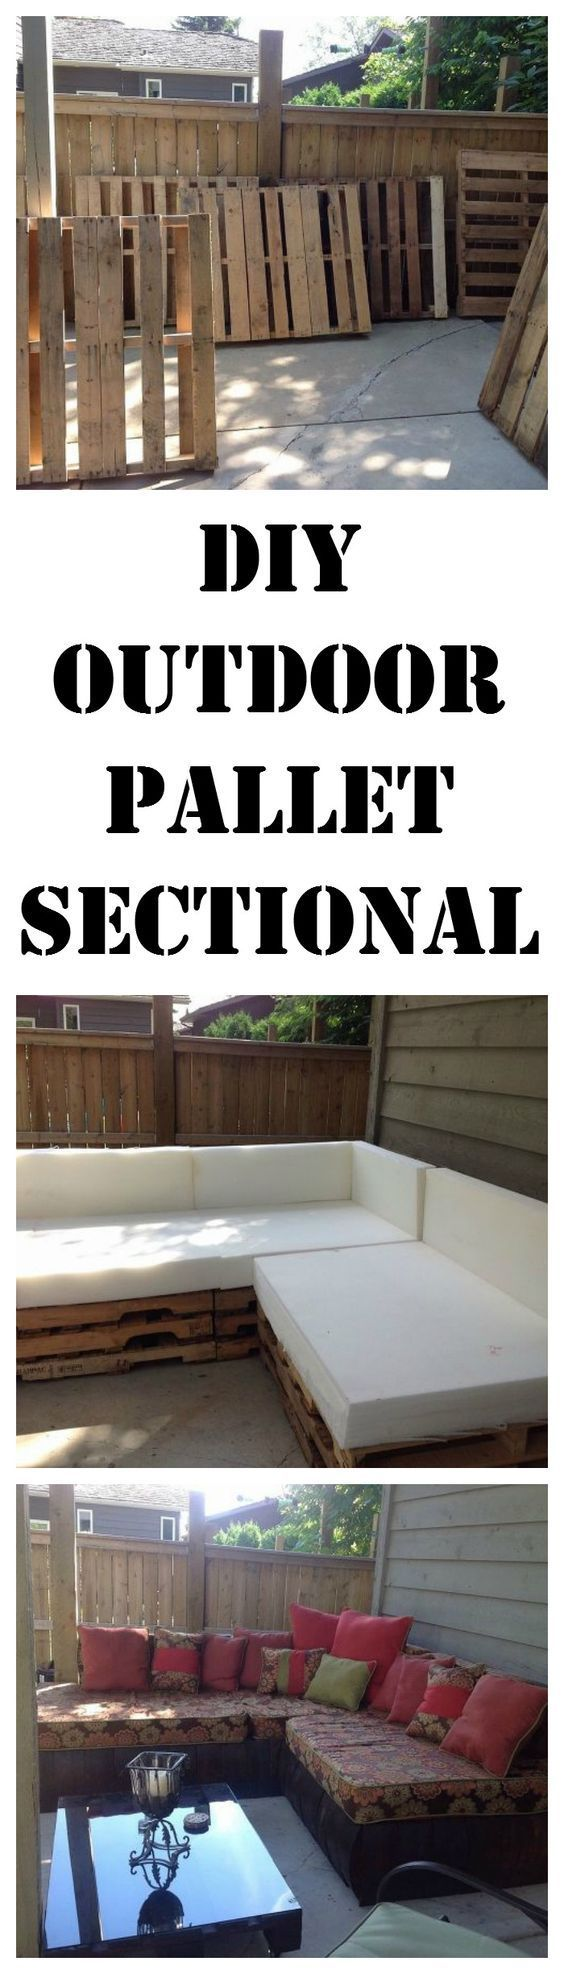 17 Best Ideas About Outdoor Sectional On Pinterest